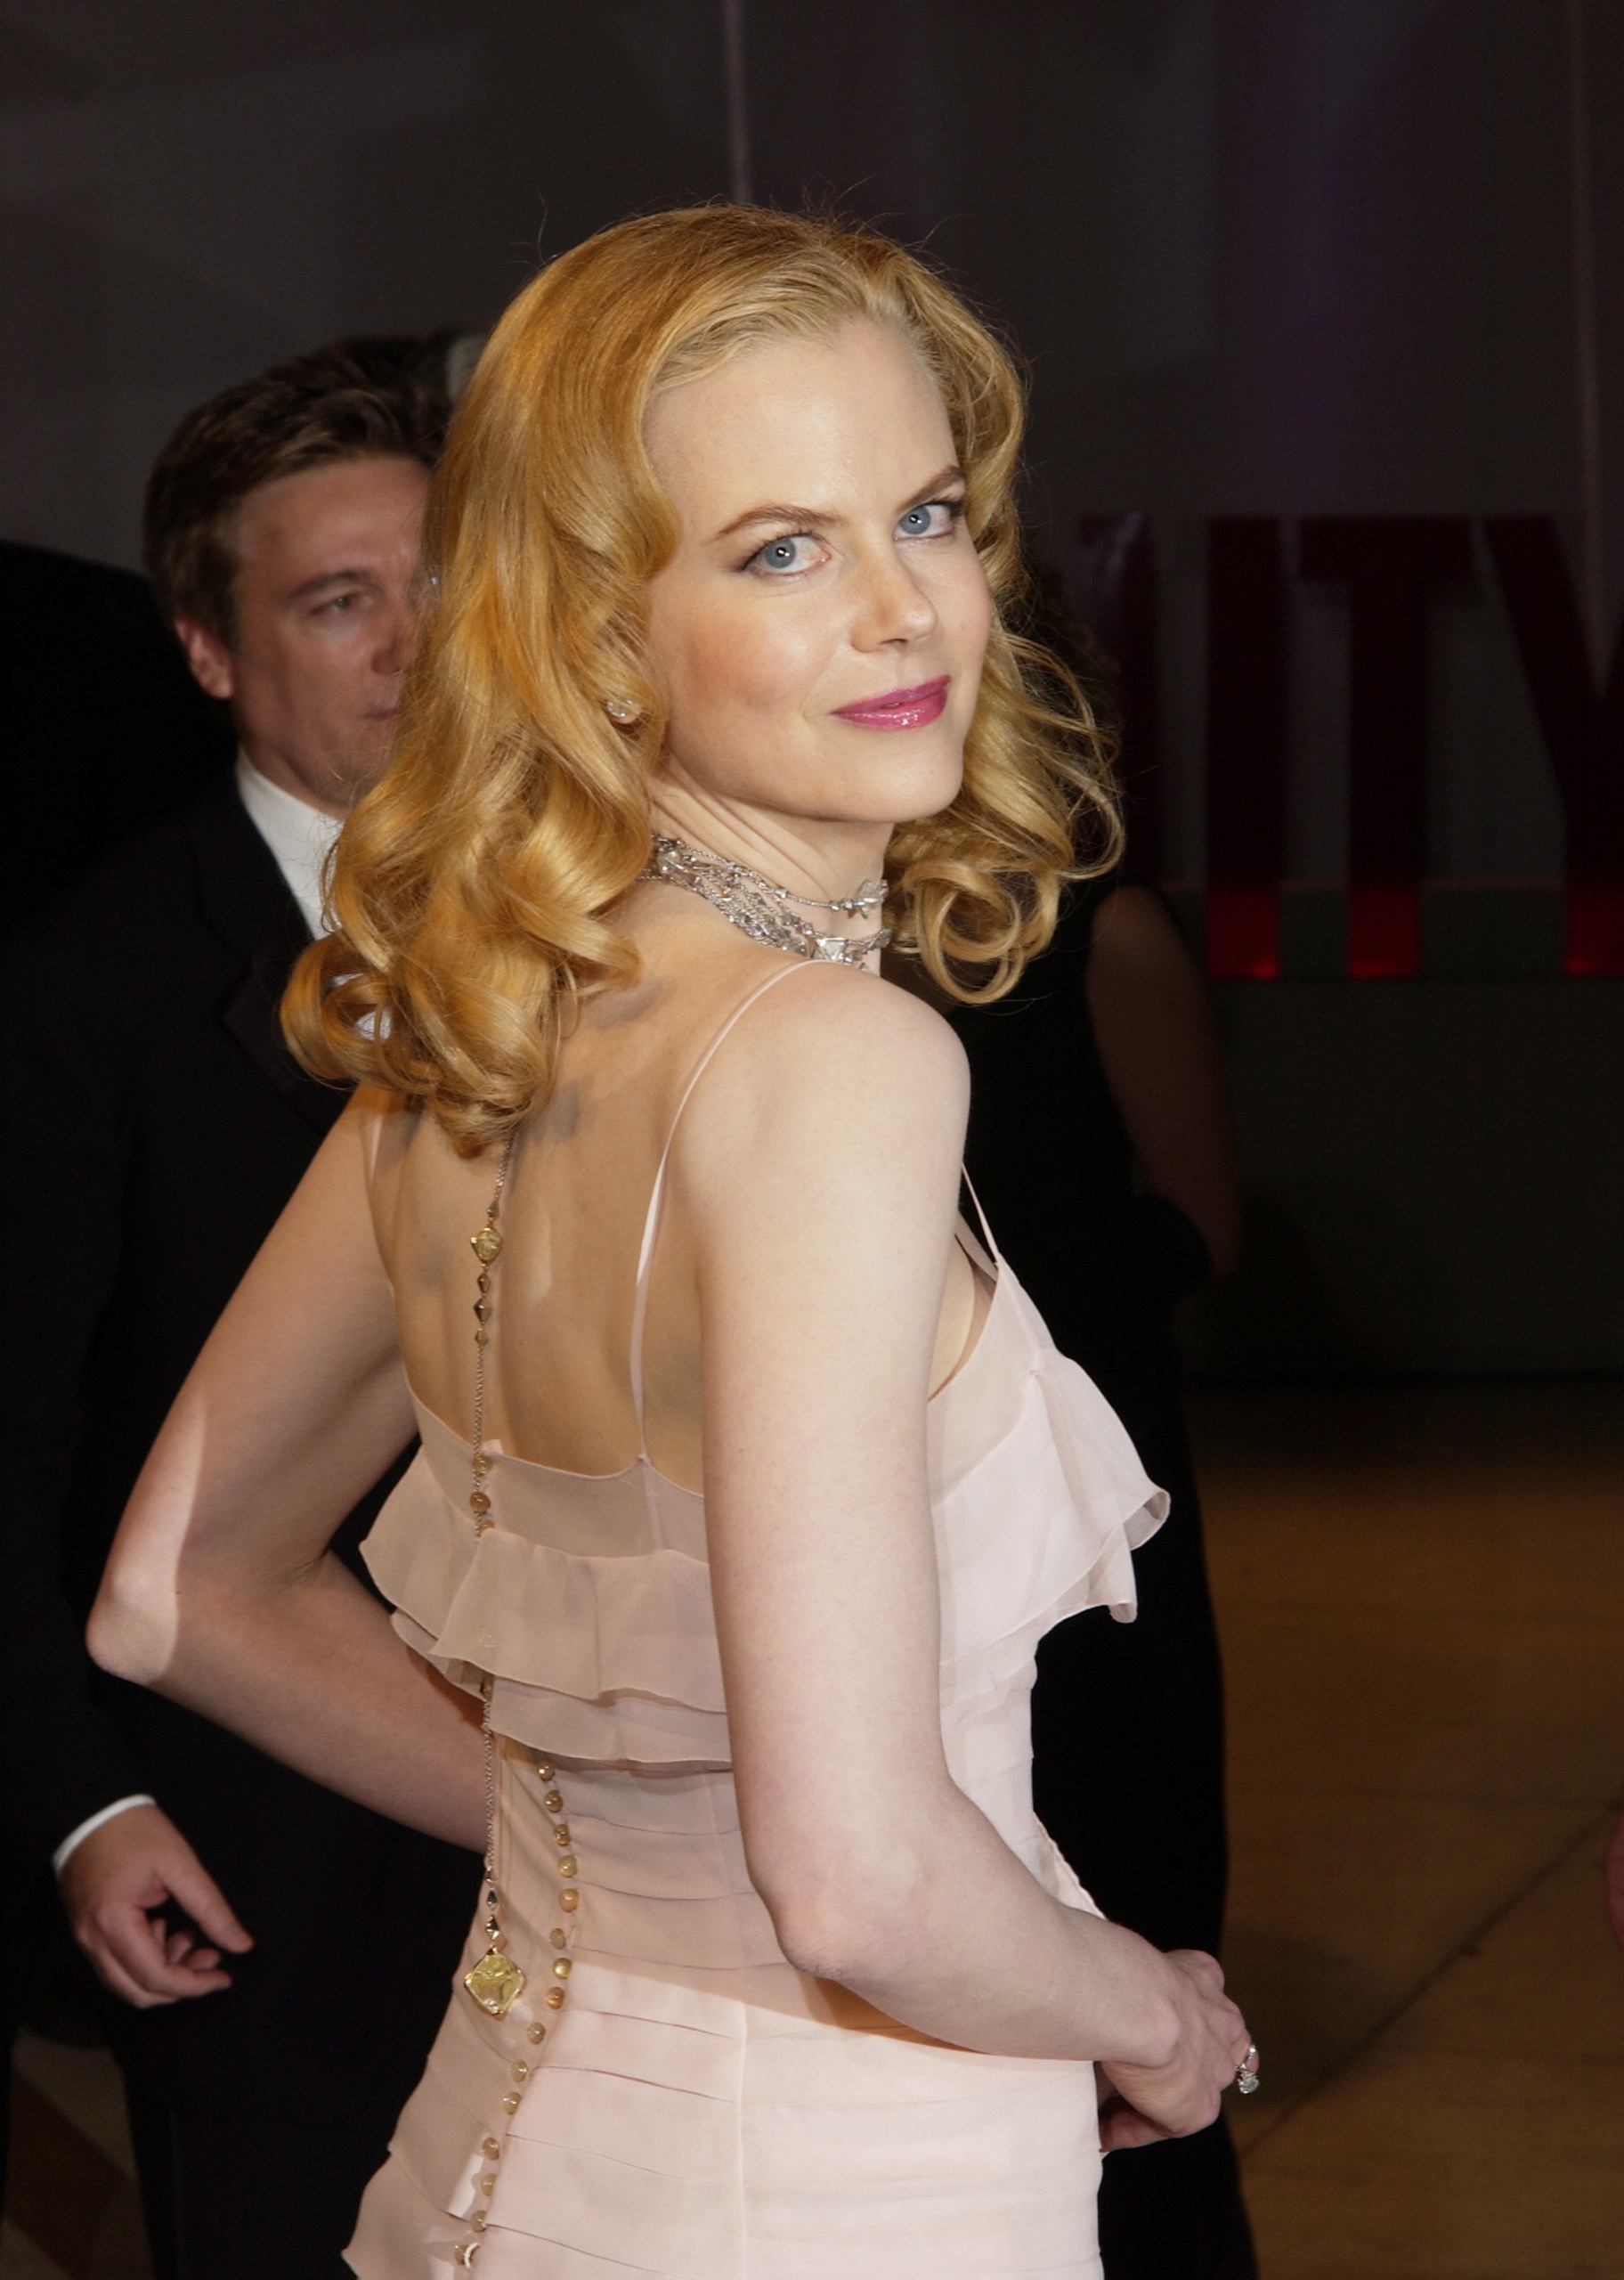 Nicole Kidman - Images Hot